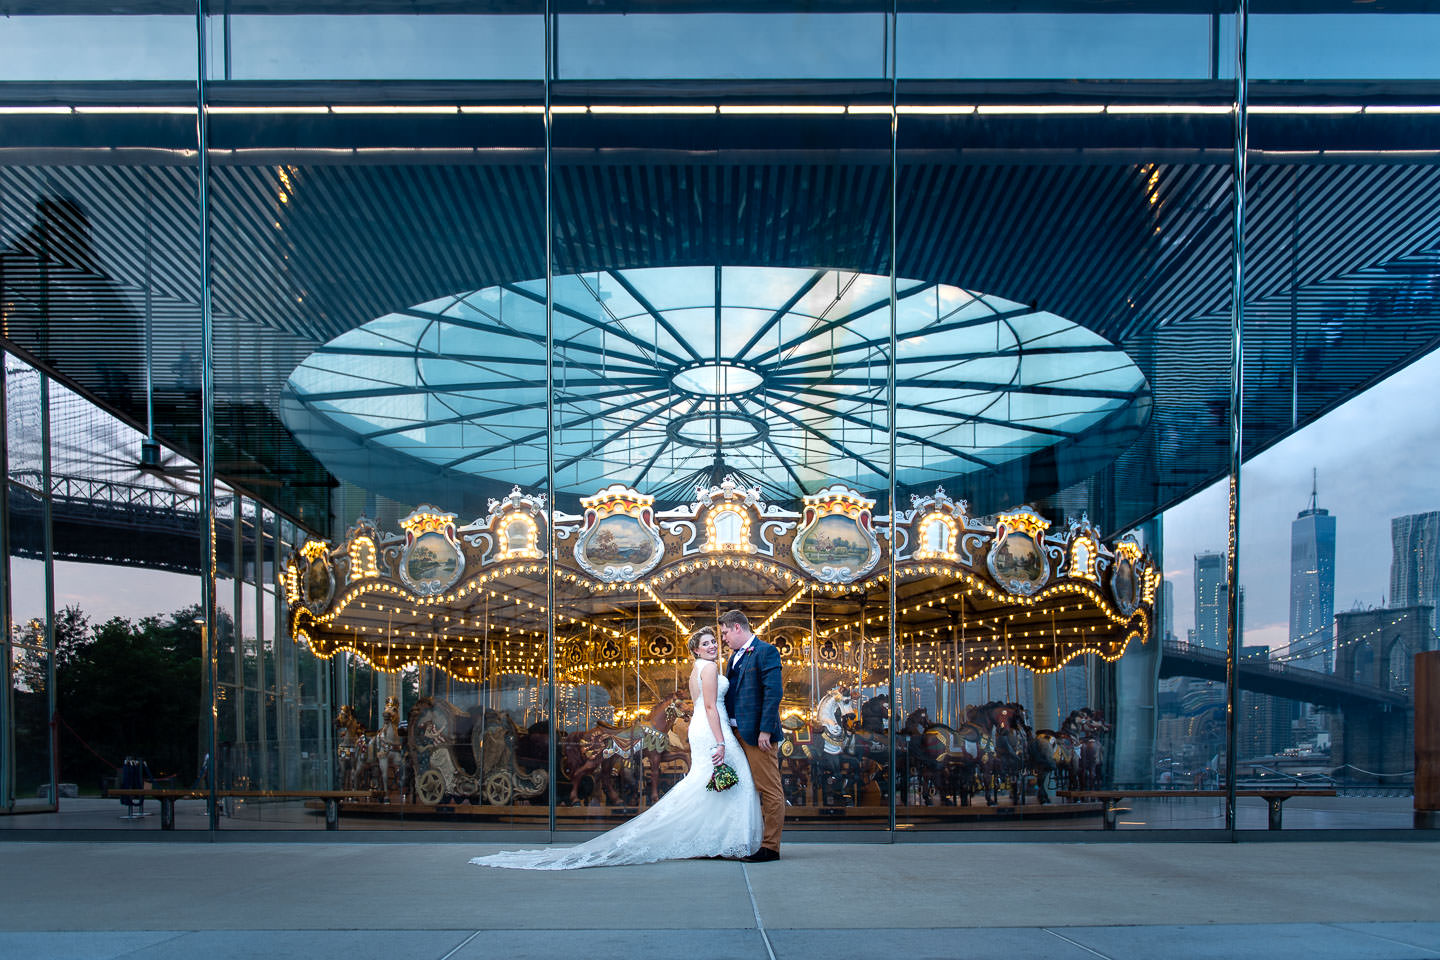 bride-and-groom-by-carousel-in-dumbo-brooklyn-at-night.jpg